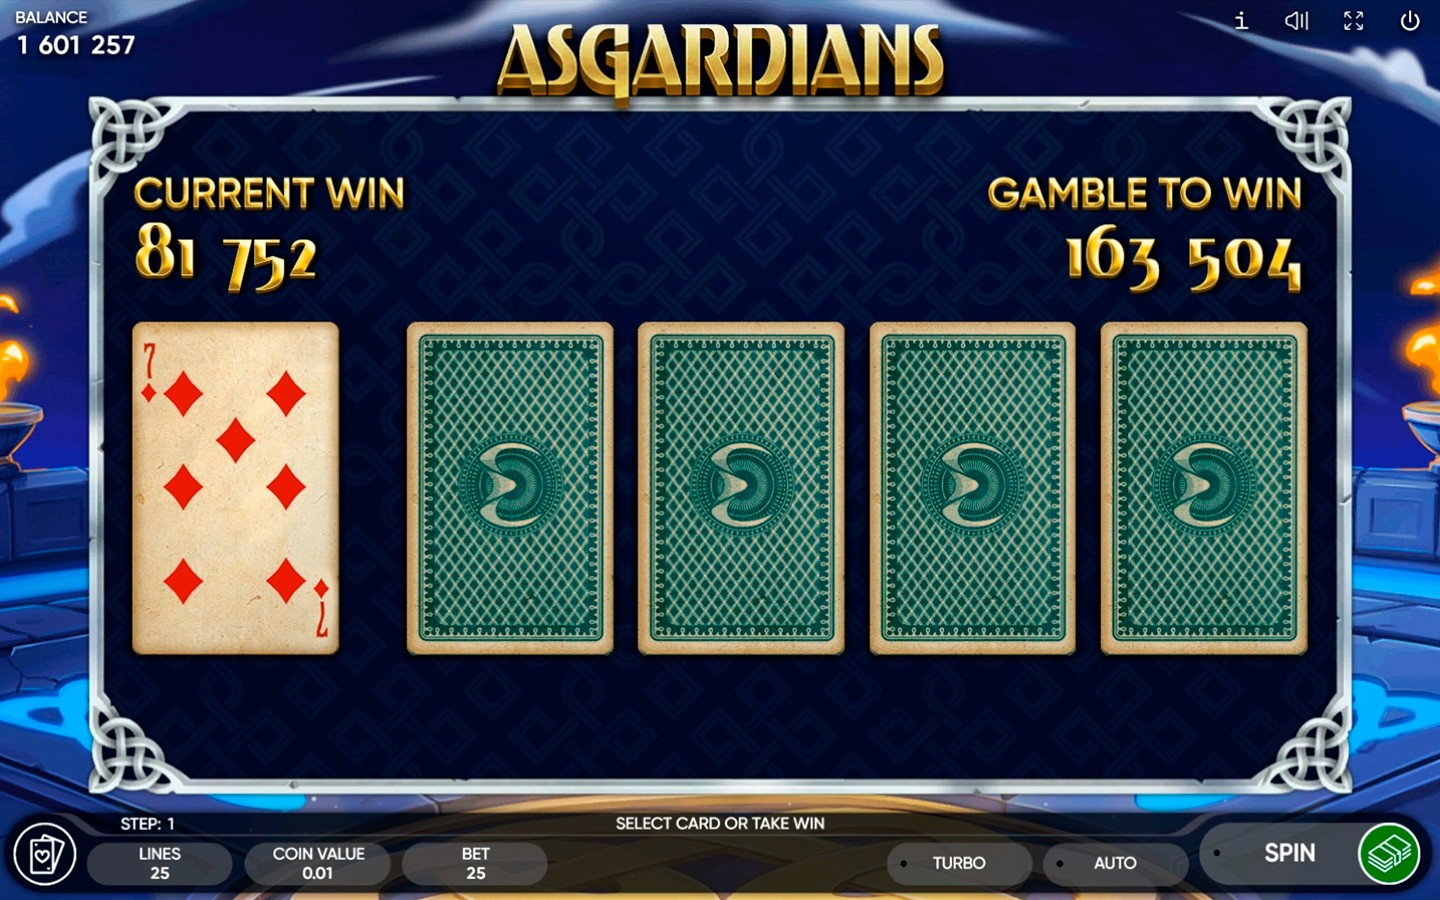 TOP NORDIC SLOT SLOTS OF 2020 | Try Asgardians game online!